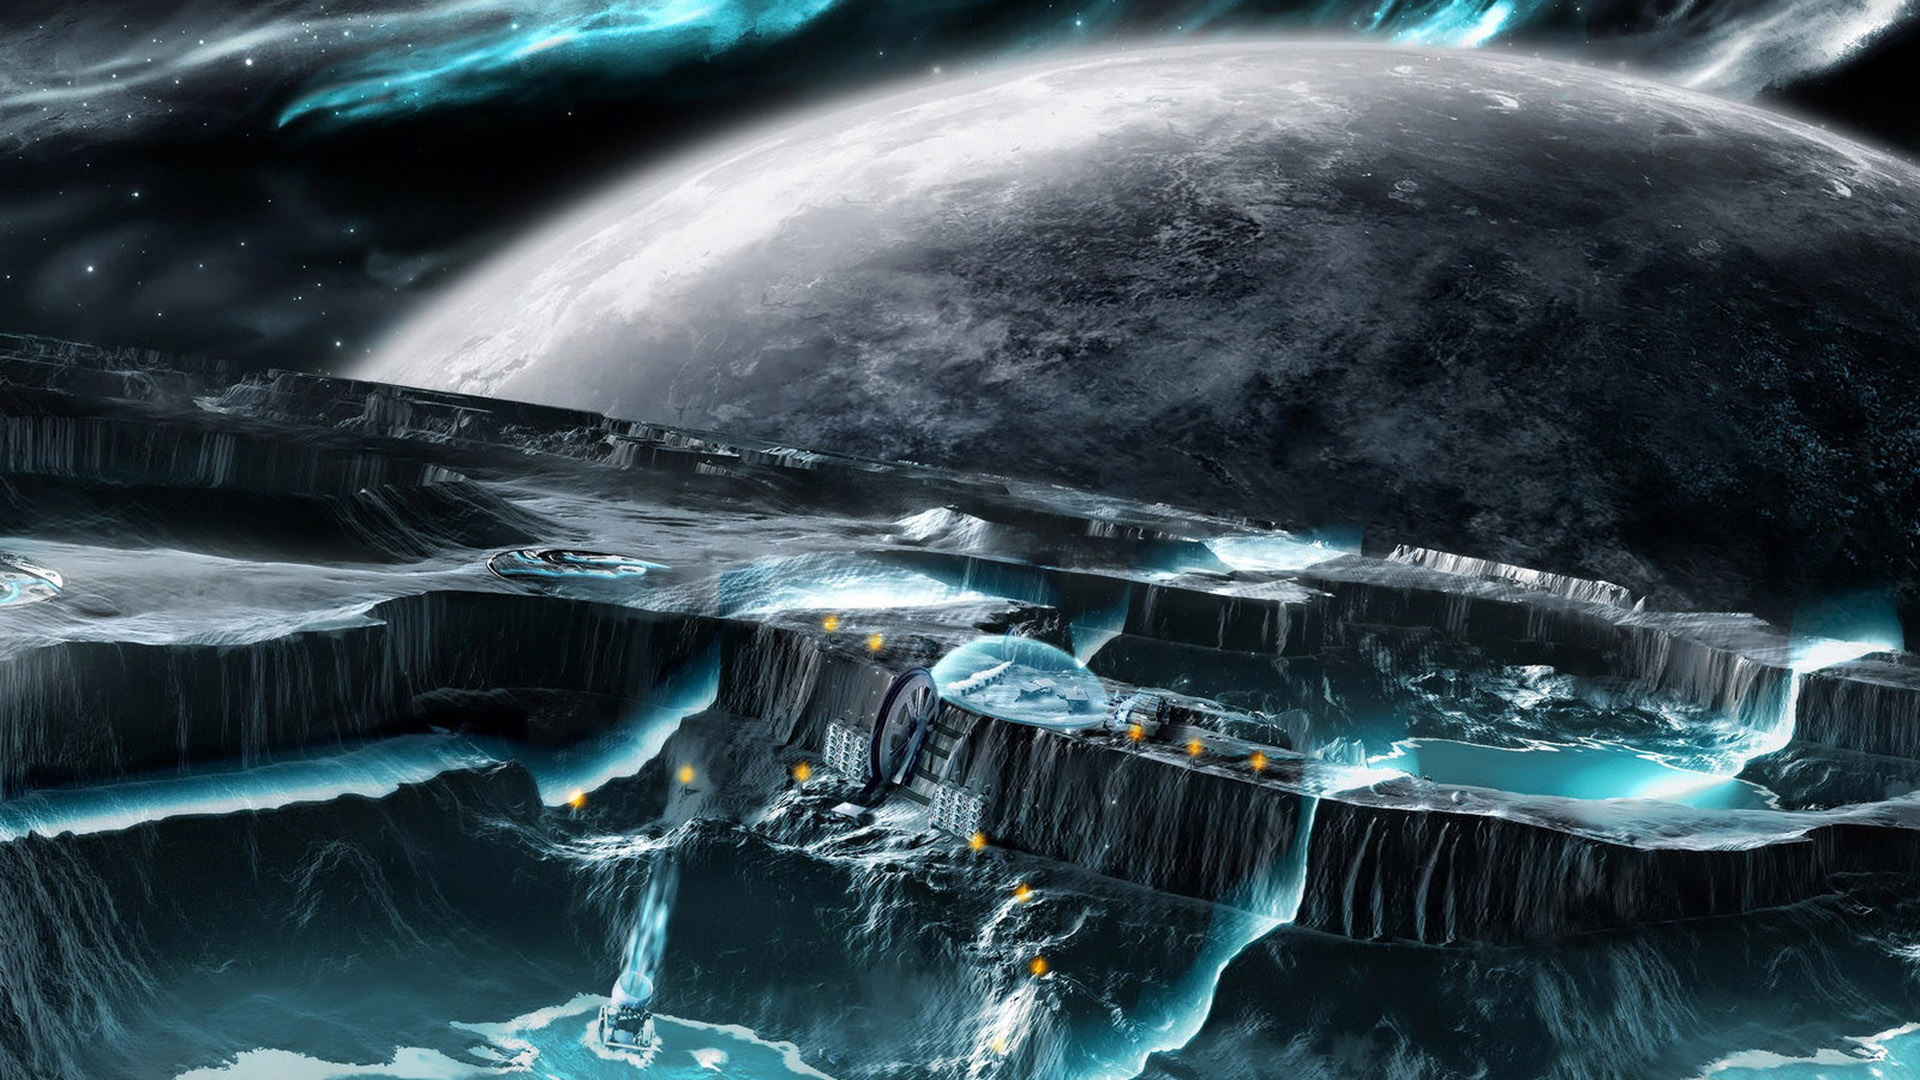 Download largest collection of hd space wallpapers for free - 3d fantasy wallpaper ...